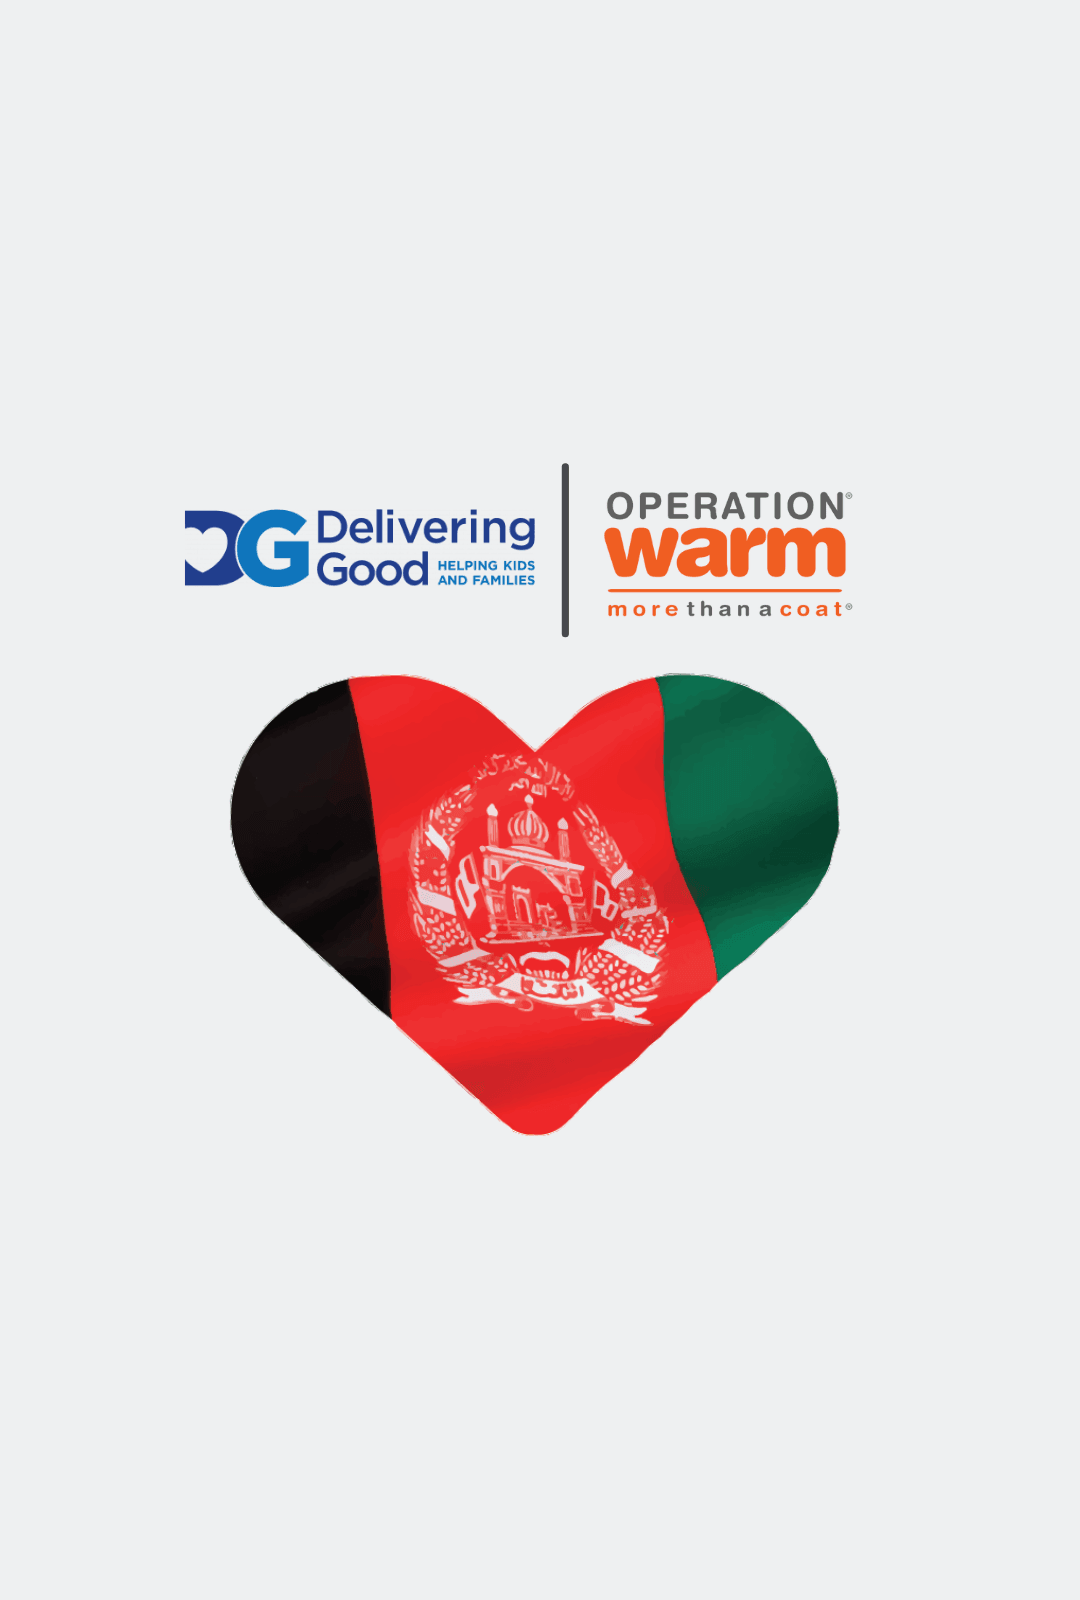 We are proud to partner with Delivering Good on their response to Afghan refugee relief